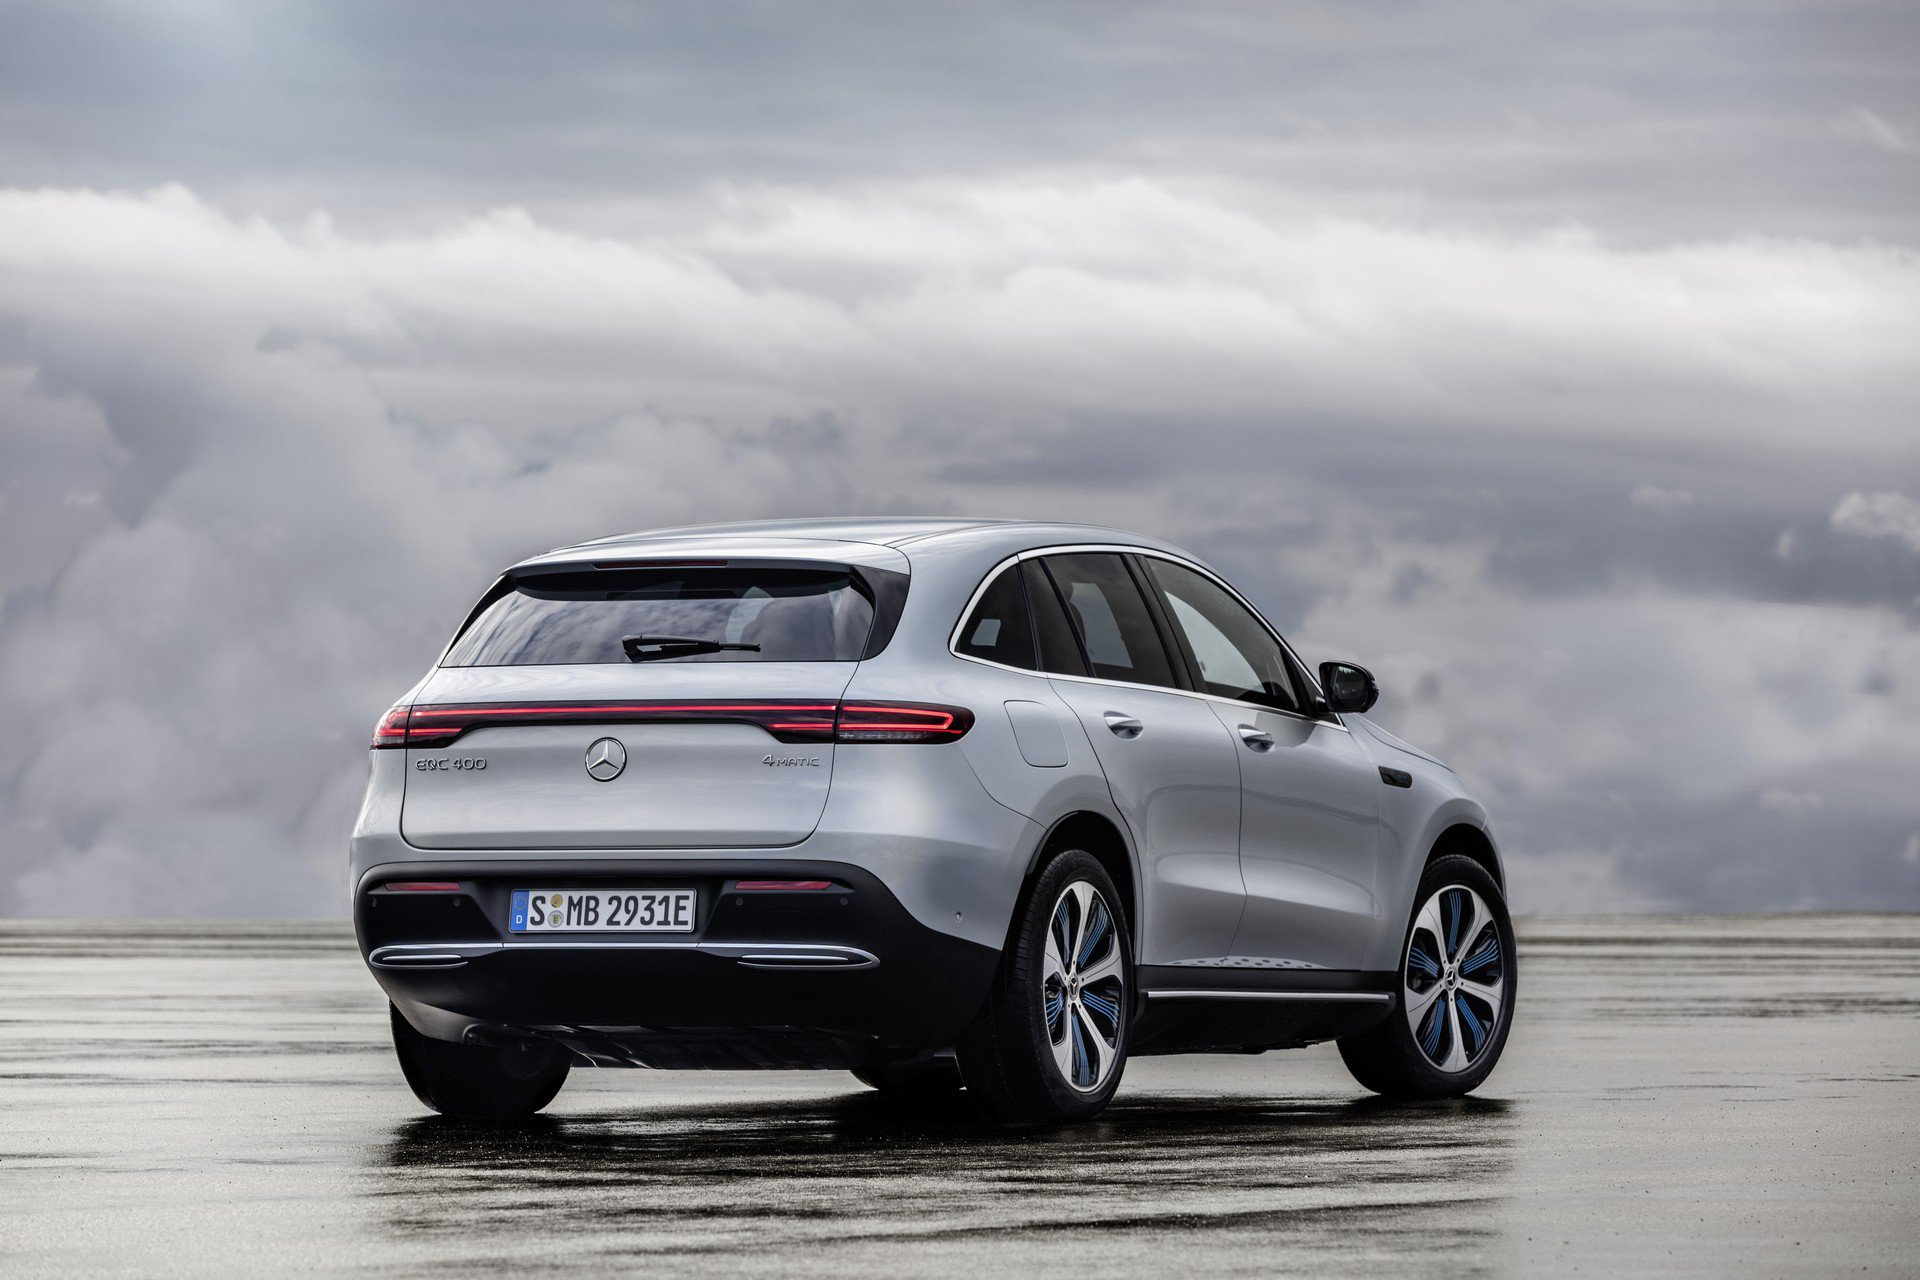 mercedes-benz eqc production to reach european dealers in mid-2019